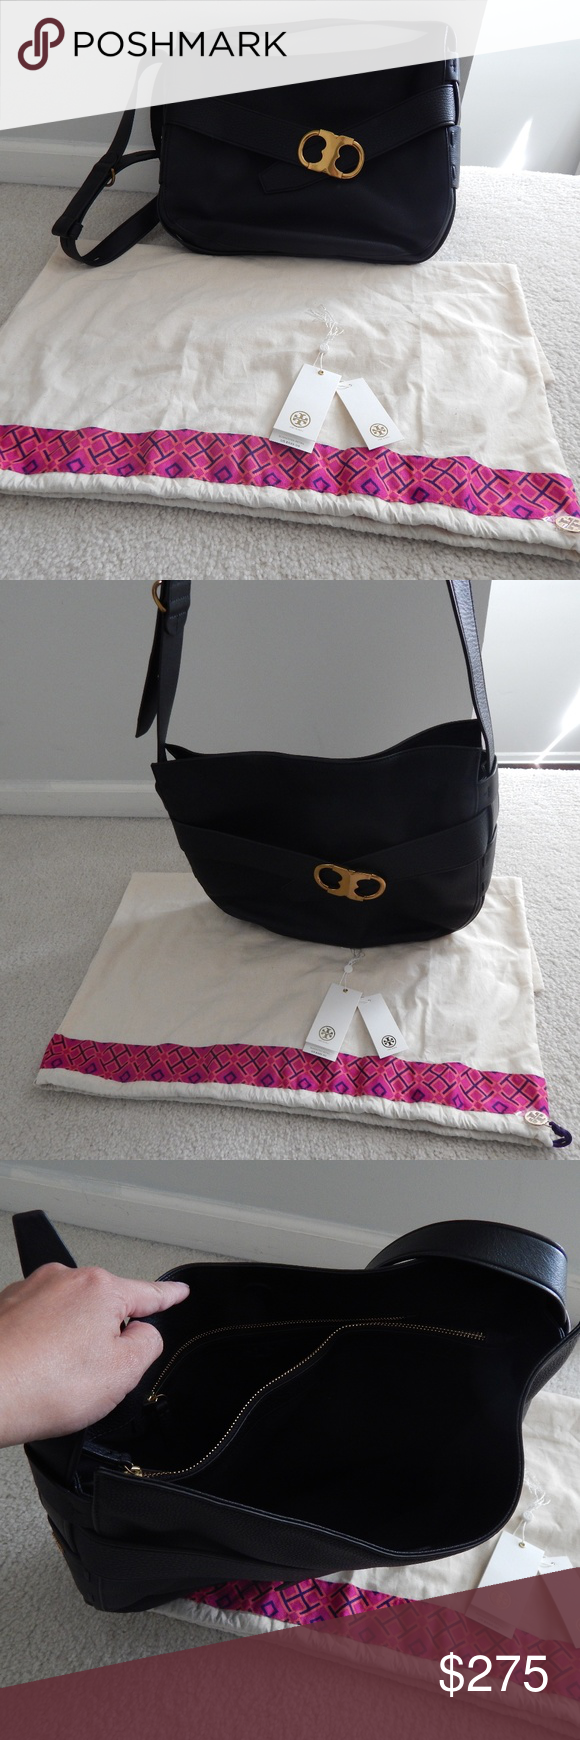 Tory Burch Gemini Belted HOBO bag EUC only worn 3 times - This saddle bag is made of pebbled leather. The easy, slouchy silhouette has two interior zipper pockets and an adjustable strap. Holds a 10